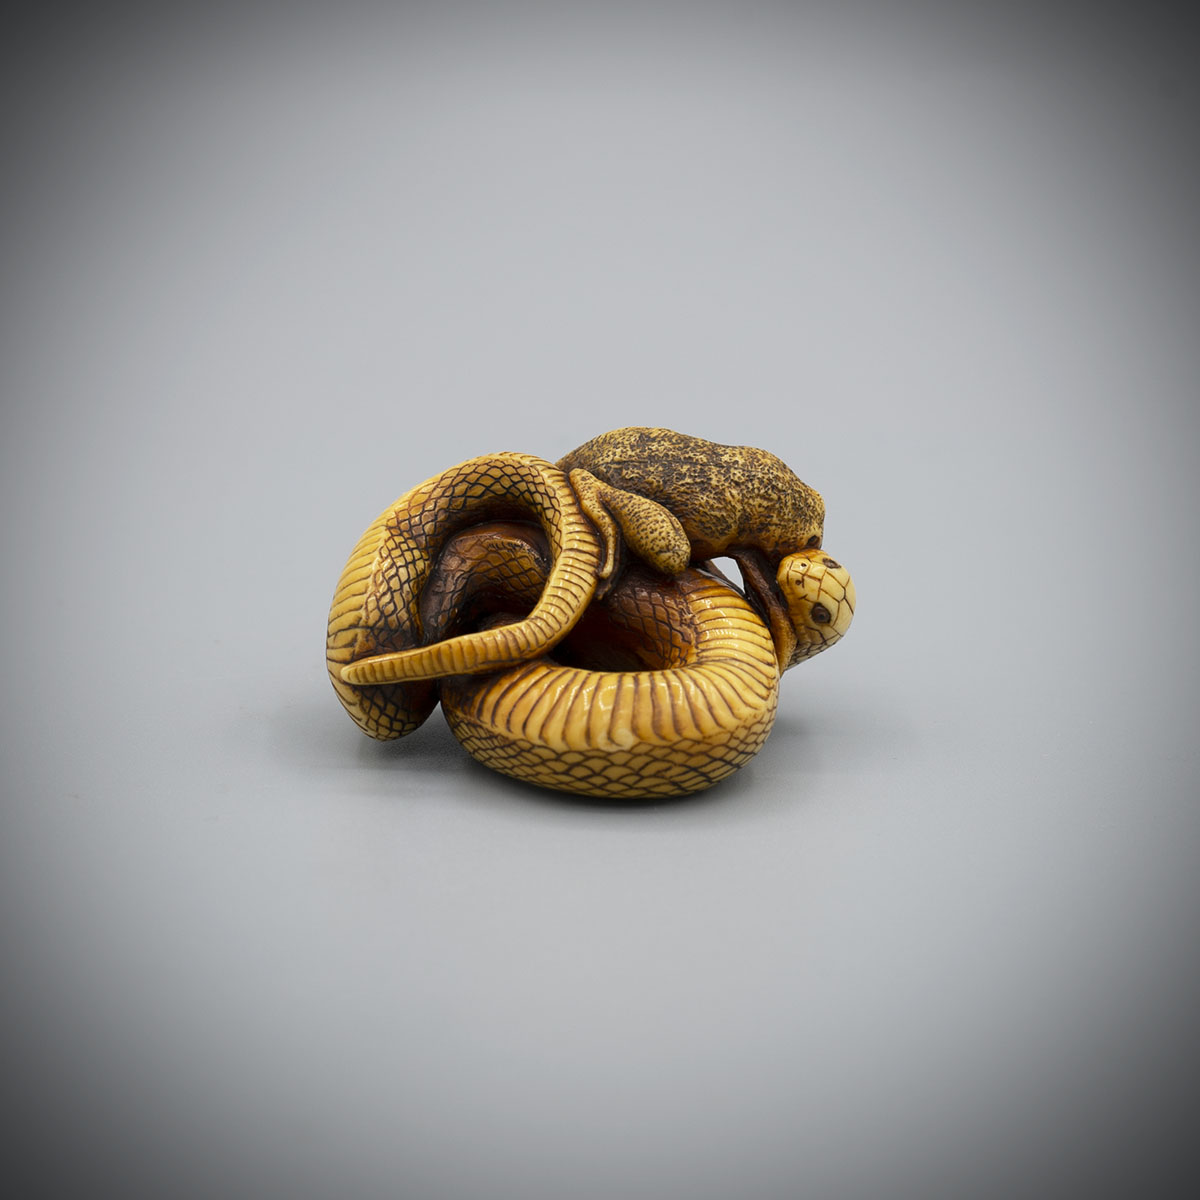 Netsuke of a snake attacking a toad,MR3391_v1